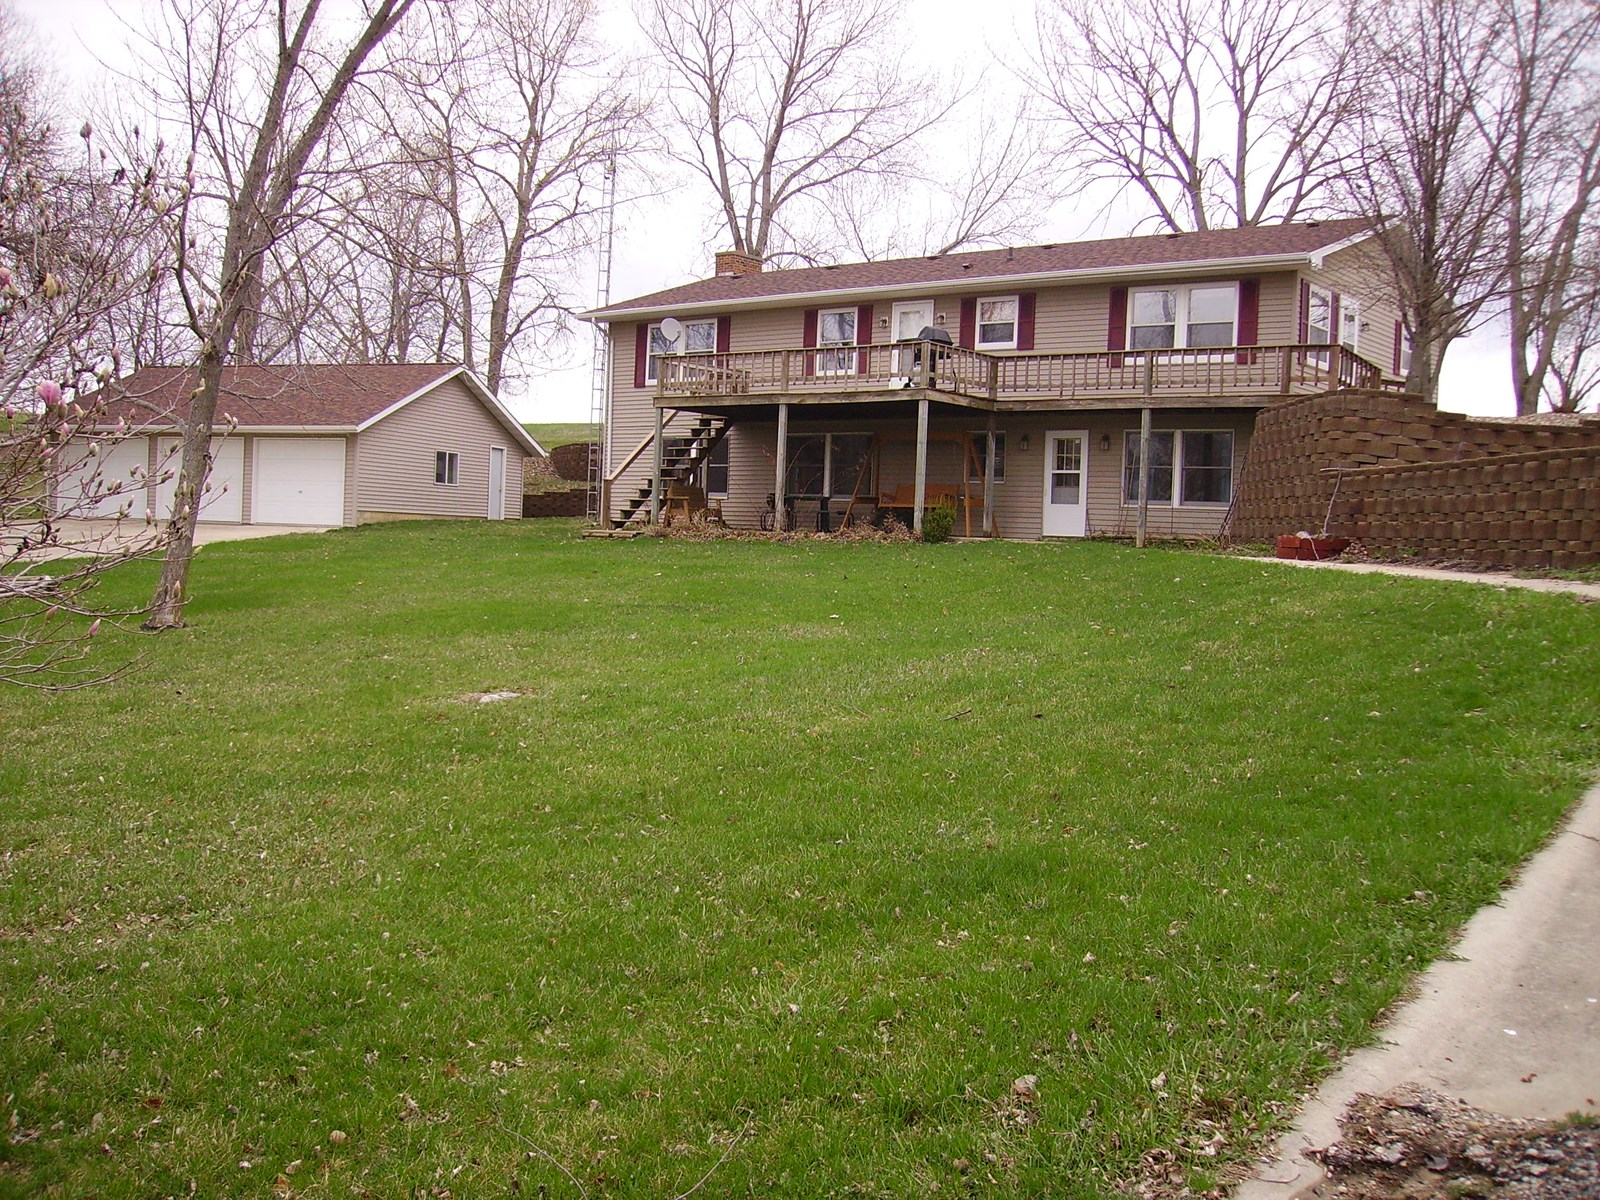 House for sale at Lake Thunderhead in North MO Unionville